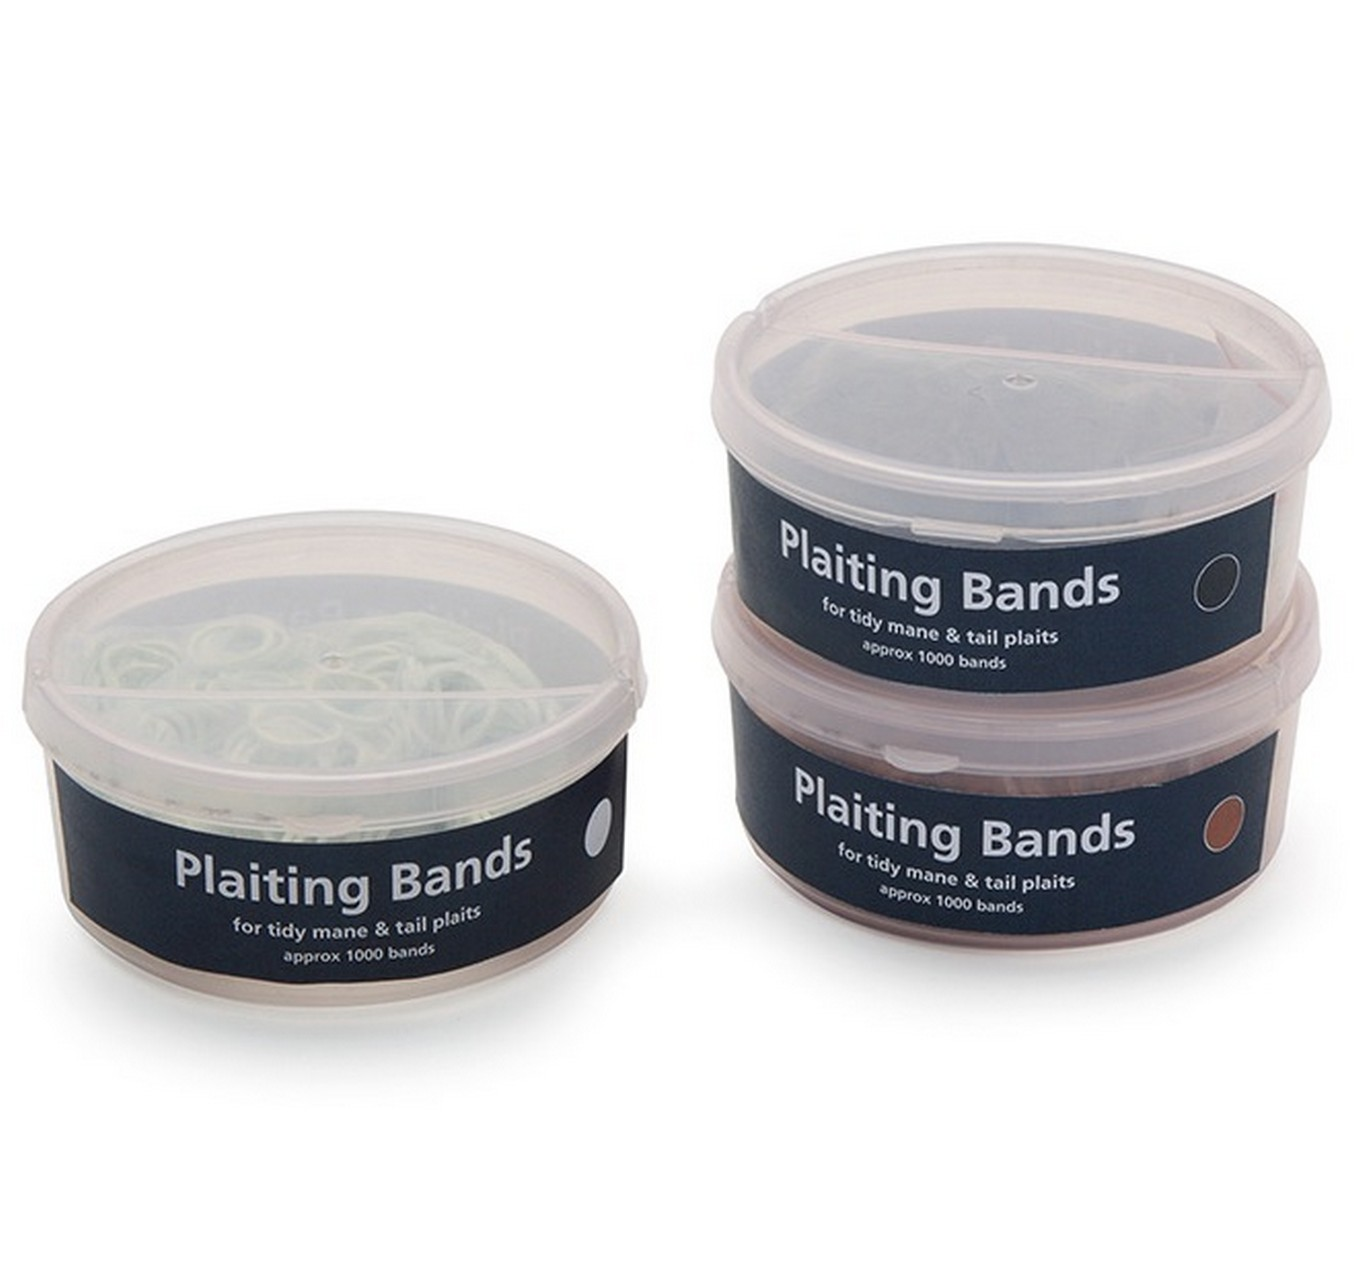 Plaiting Bands Tub White